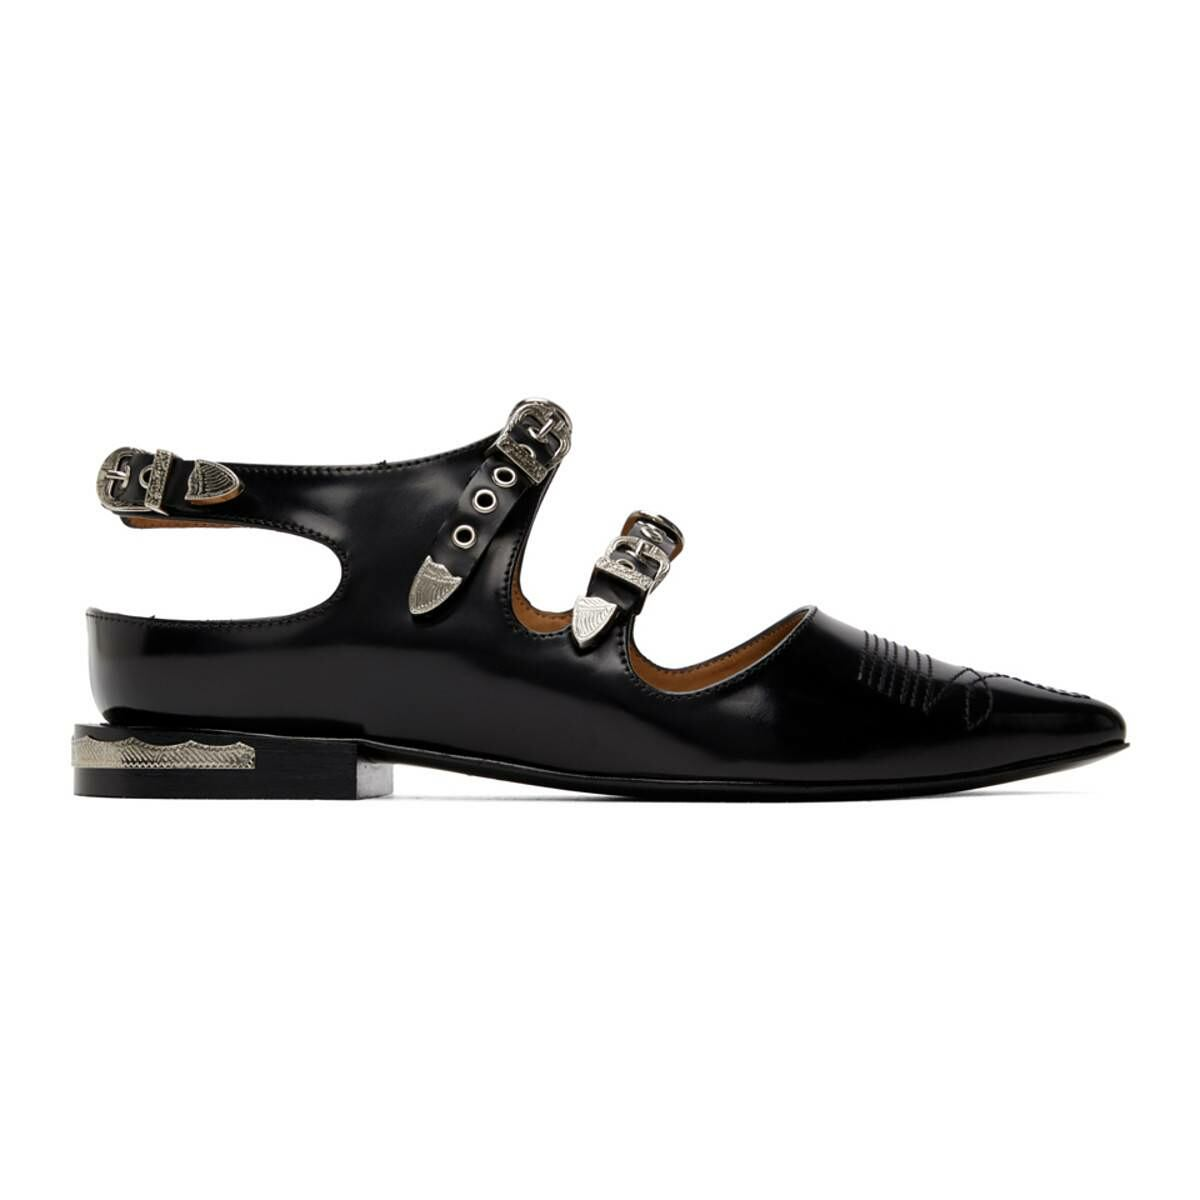 Toga Pulla Black Buckle Oxfords Ssense USA WOMEN Women SHOES Womens LEATHER SHOES